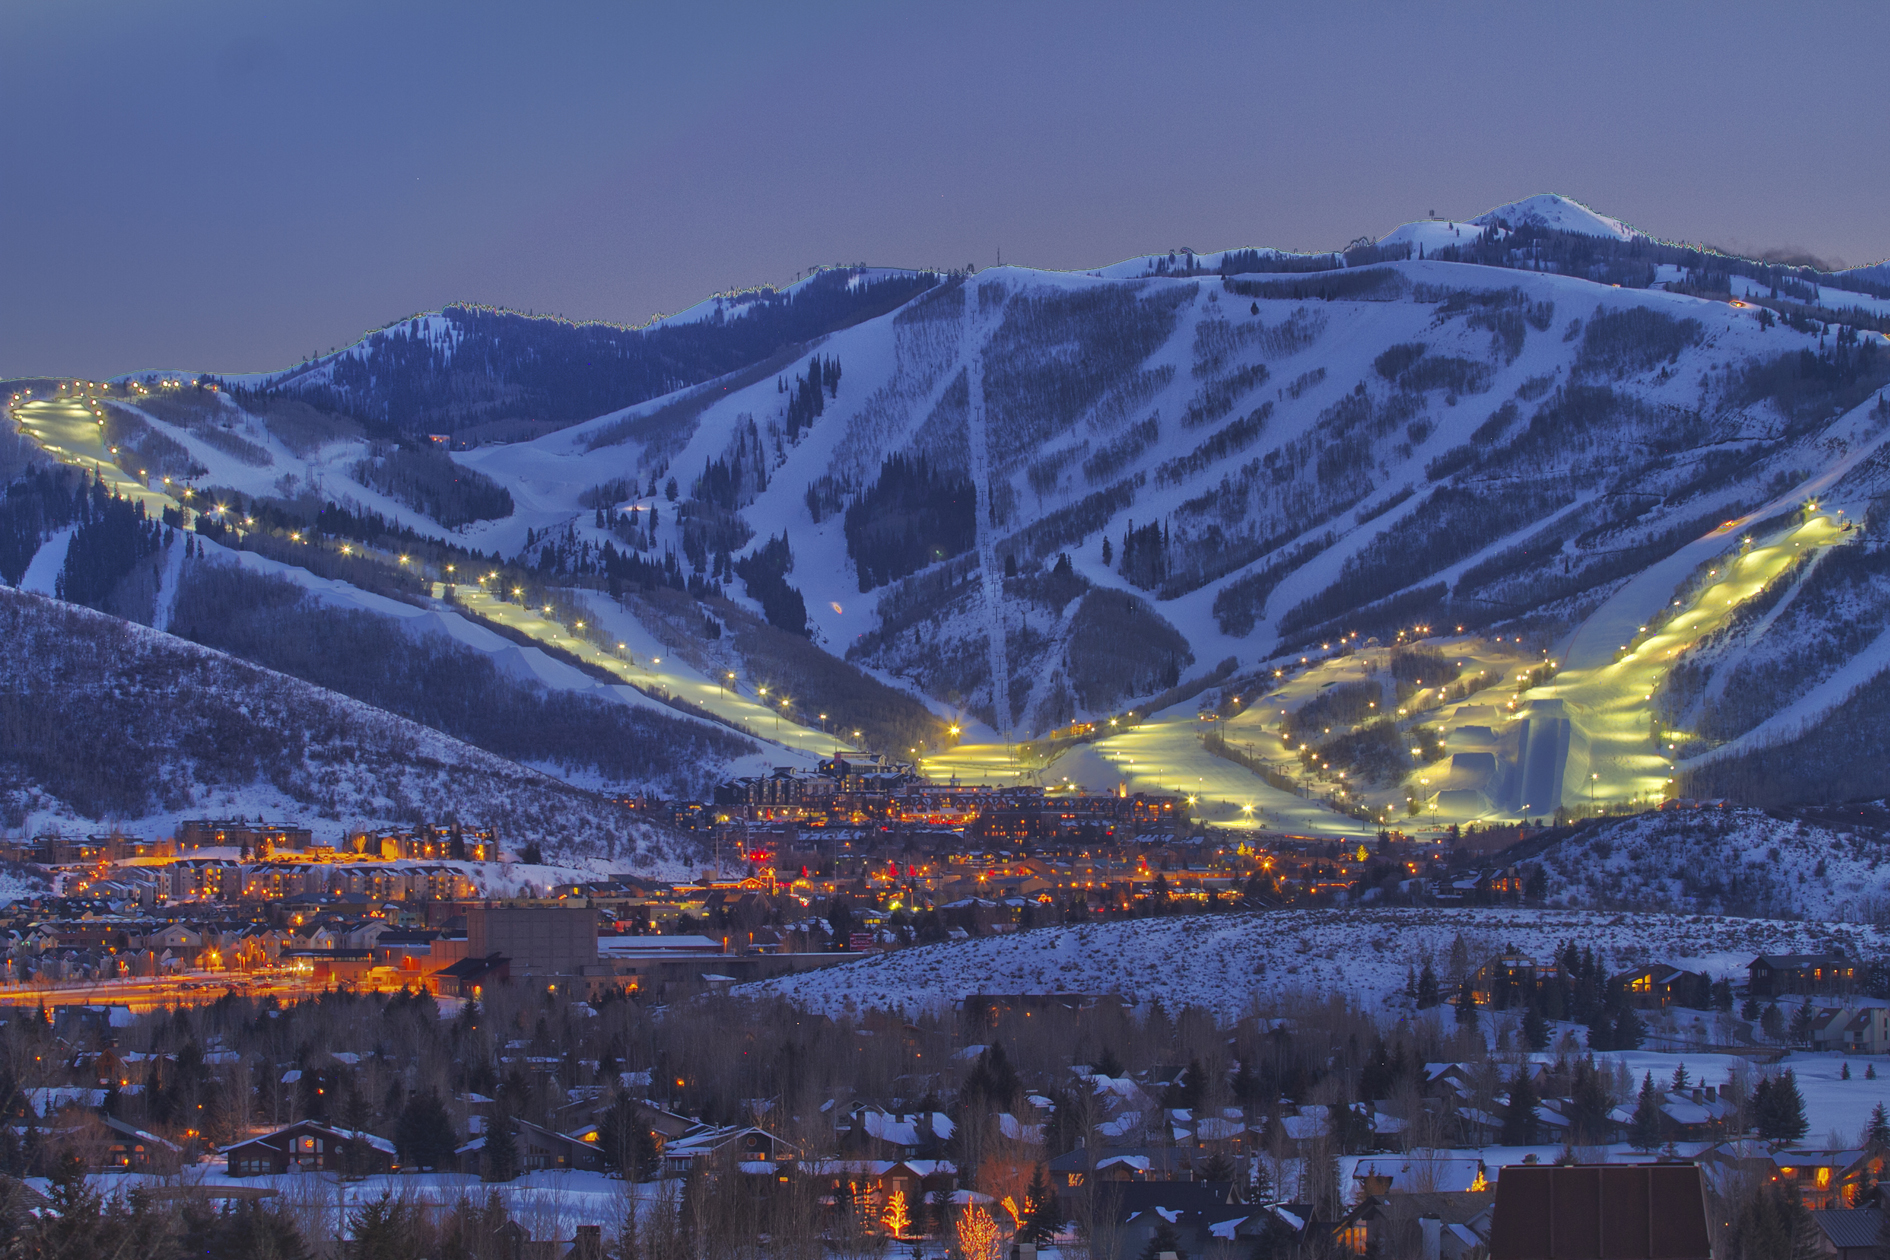 The mountain has it all! PC: Park City